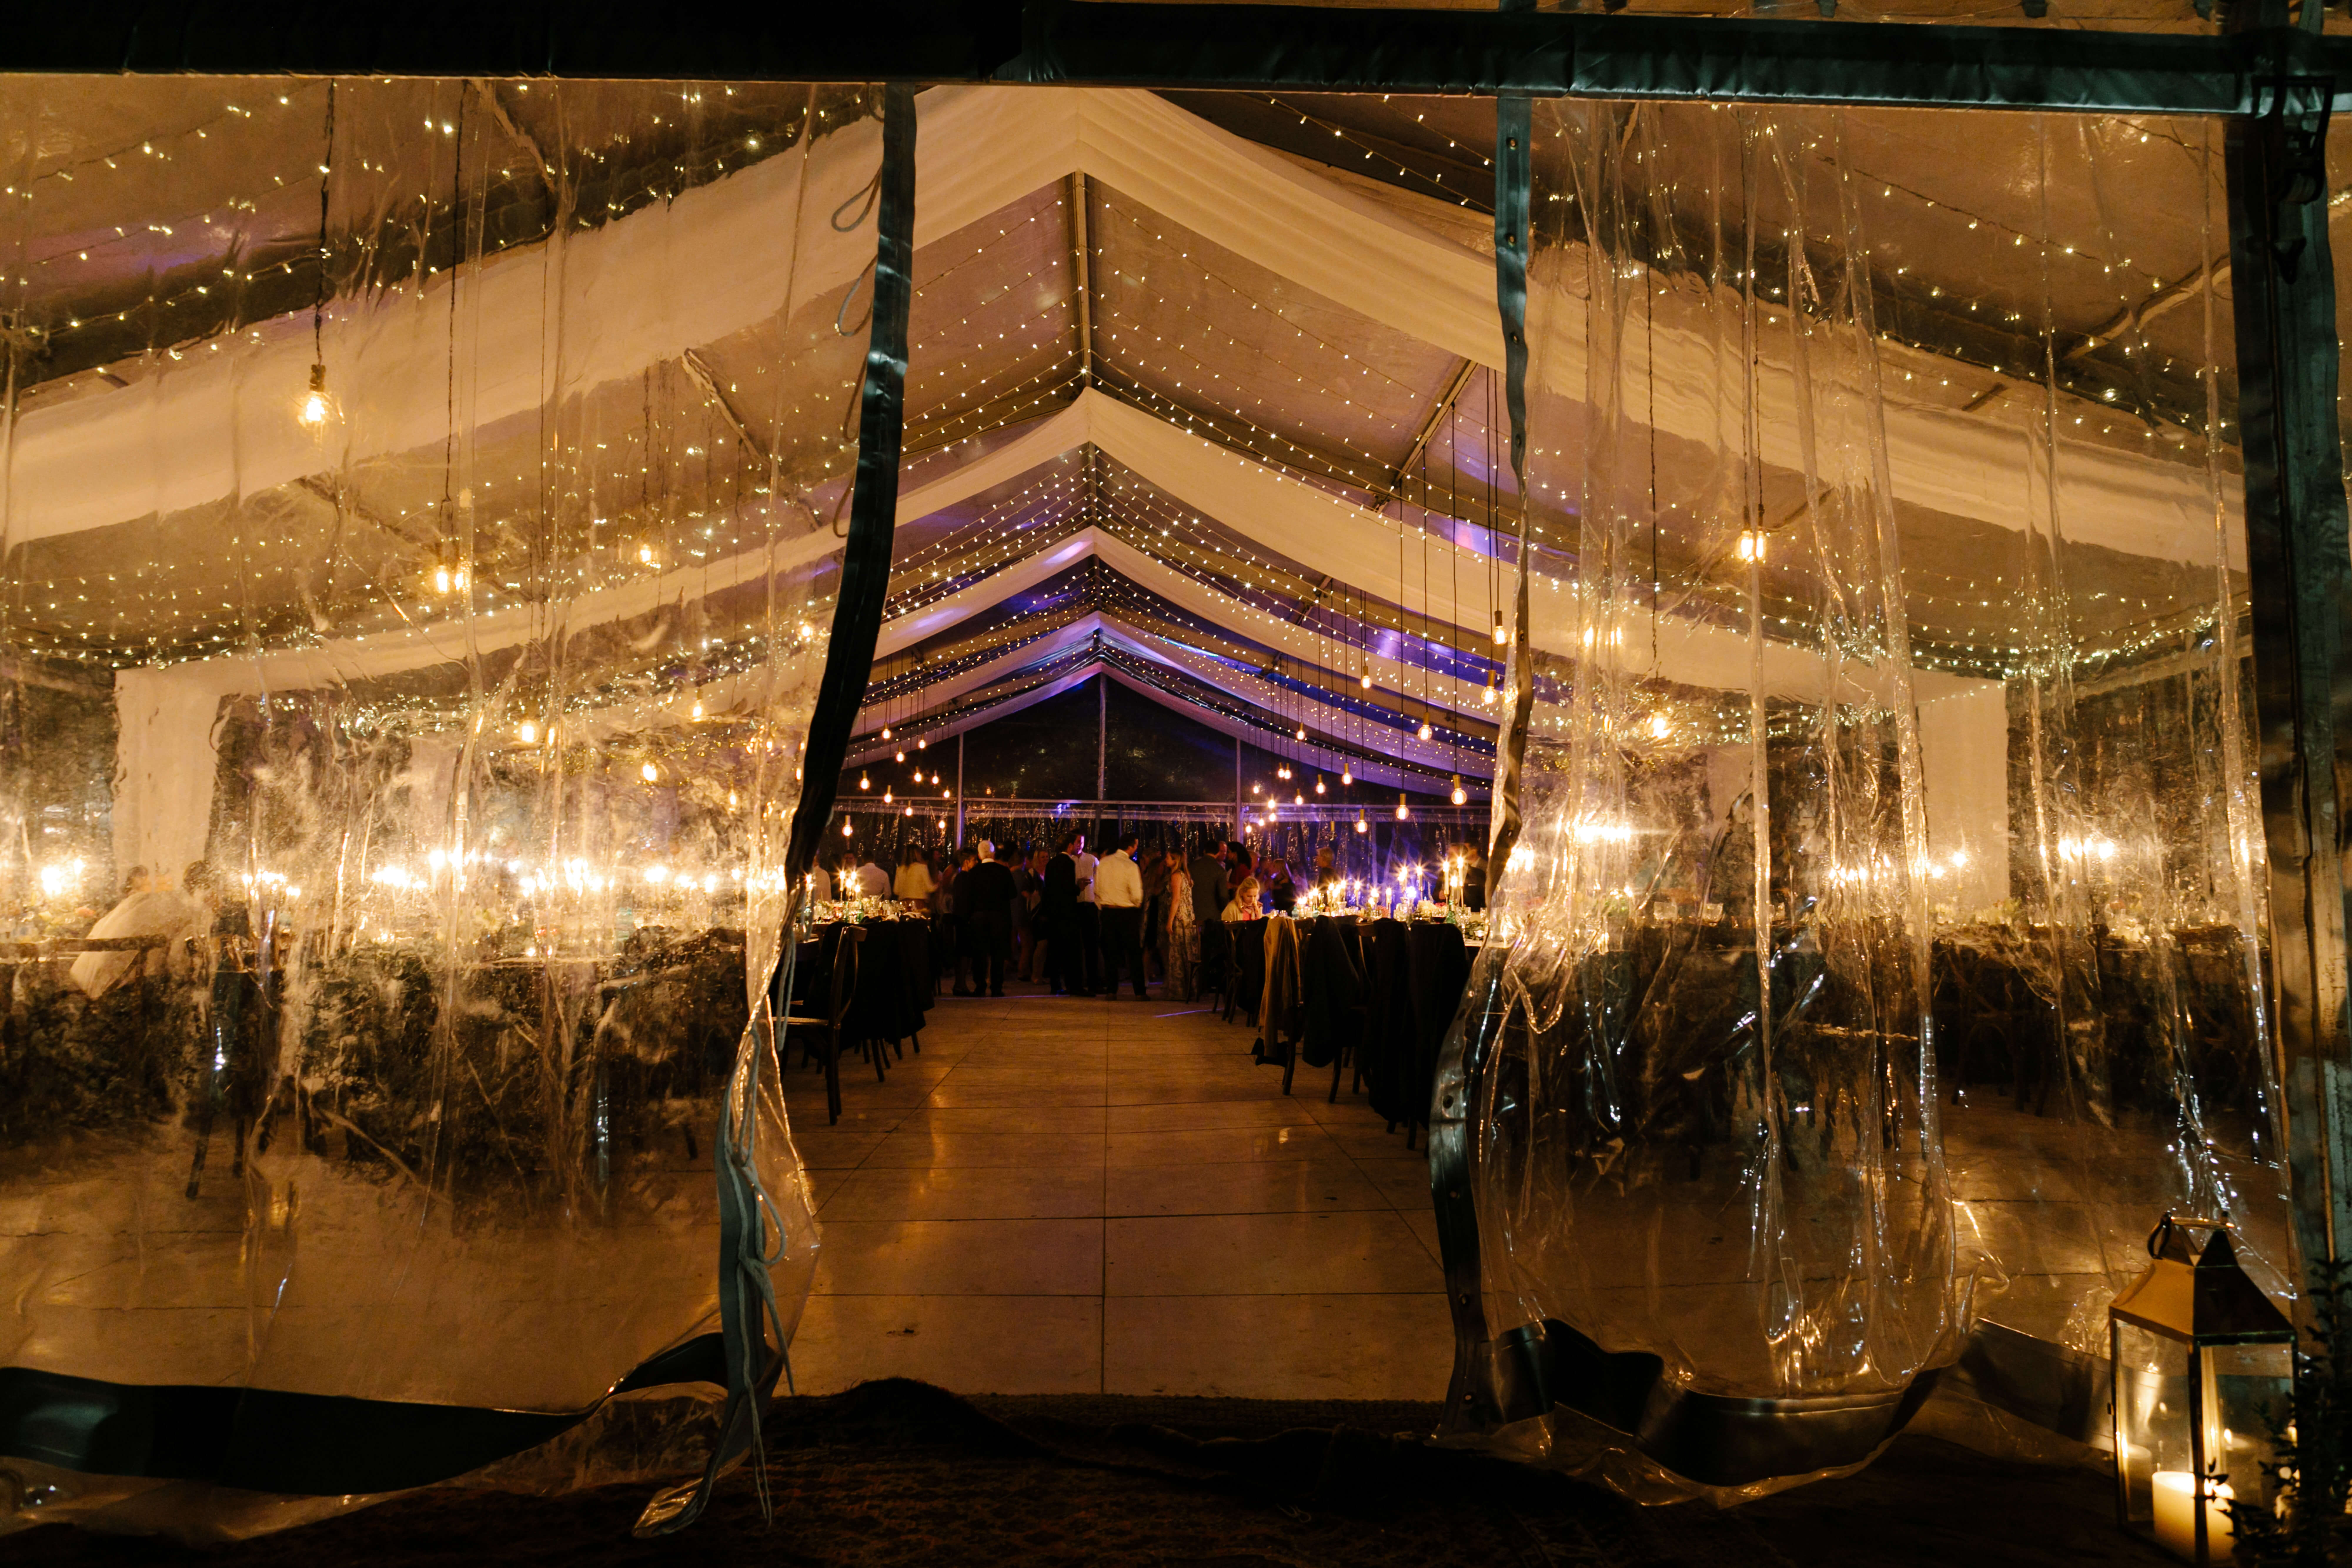 A breathtaking outdoor wedding tent in the middle of a Stellenbosch farm.